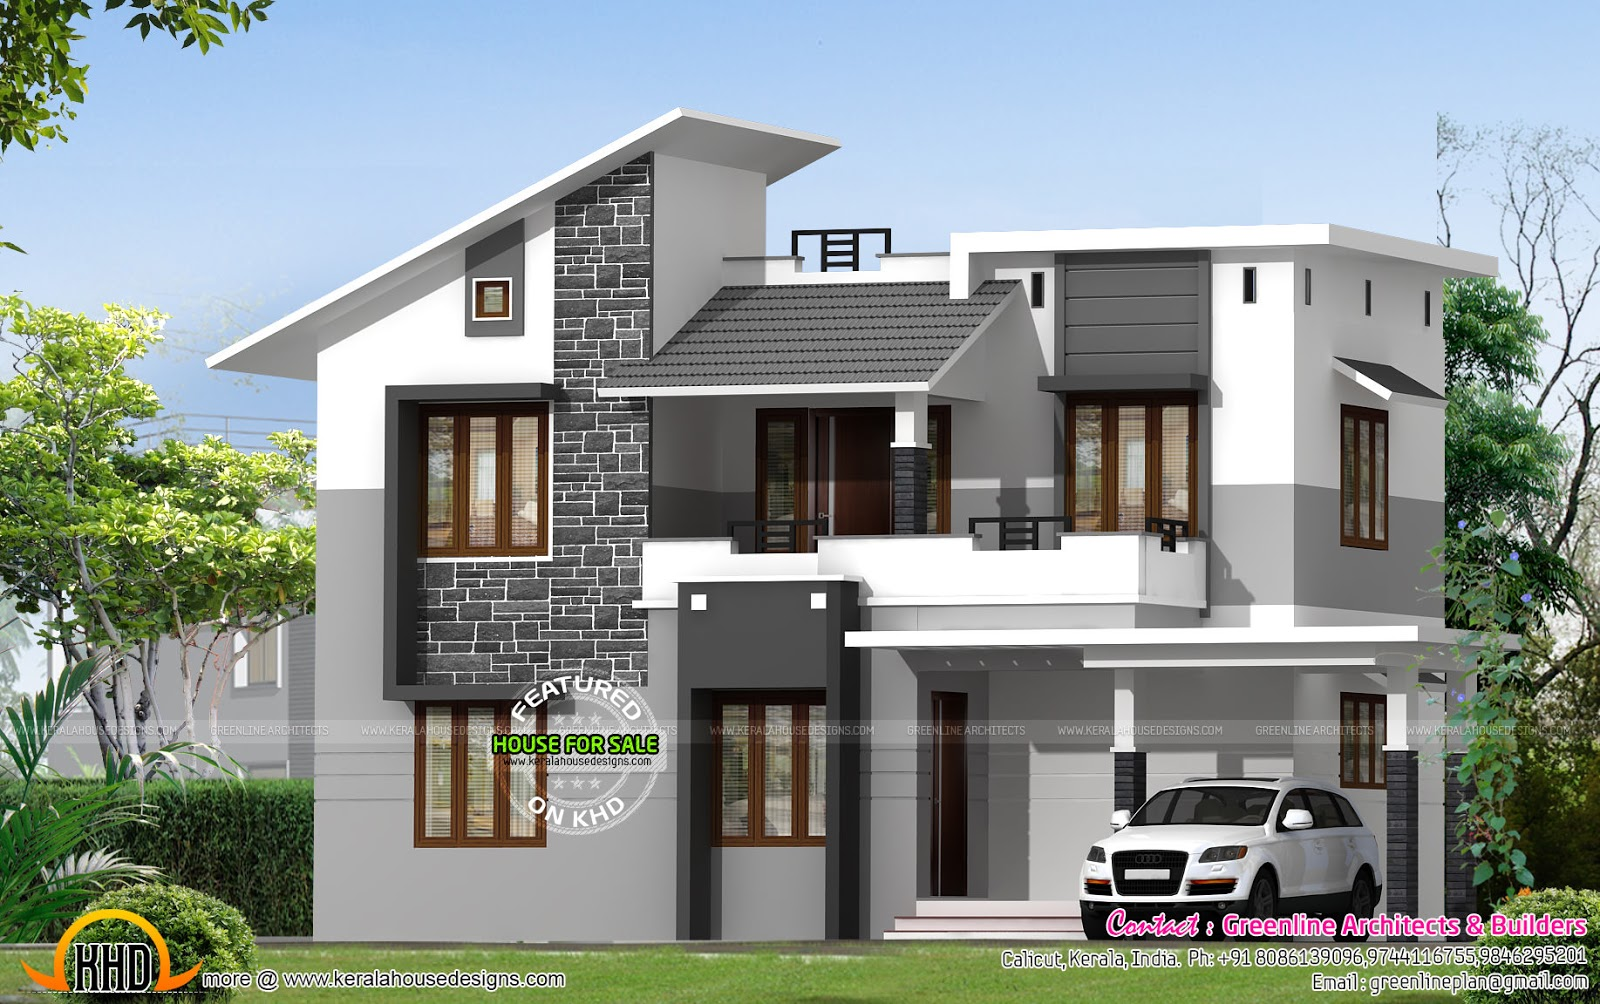 Villa for sale at calicut kerala kerala home design and for Home design